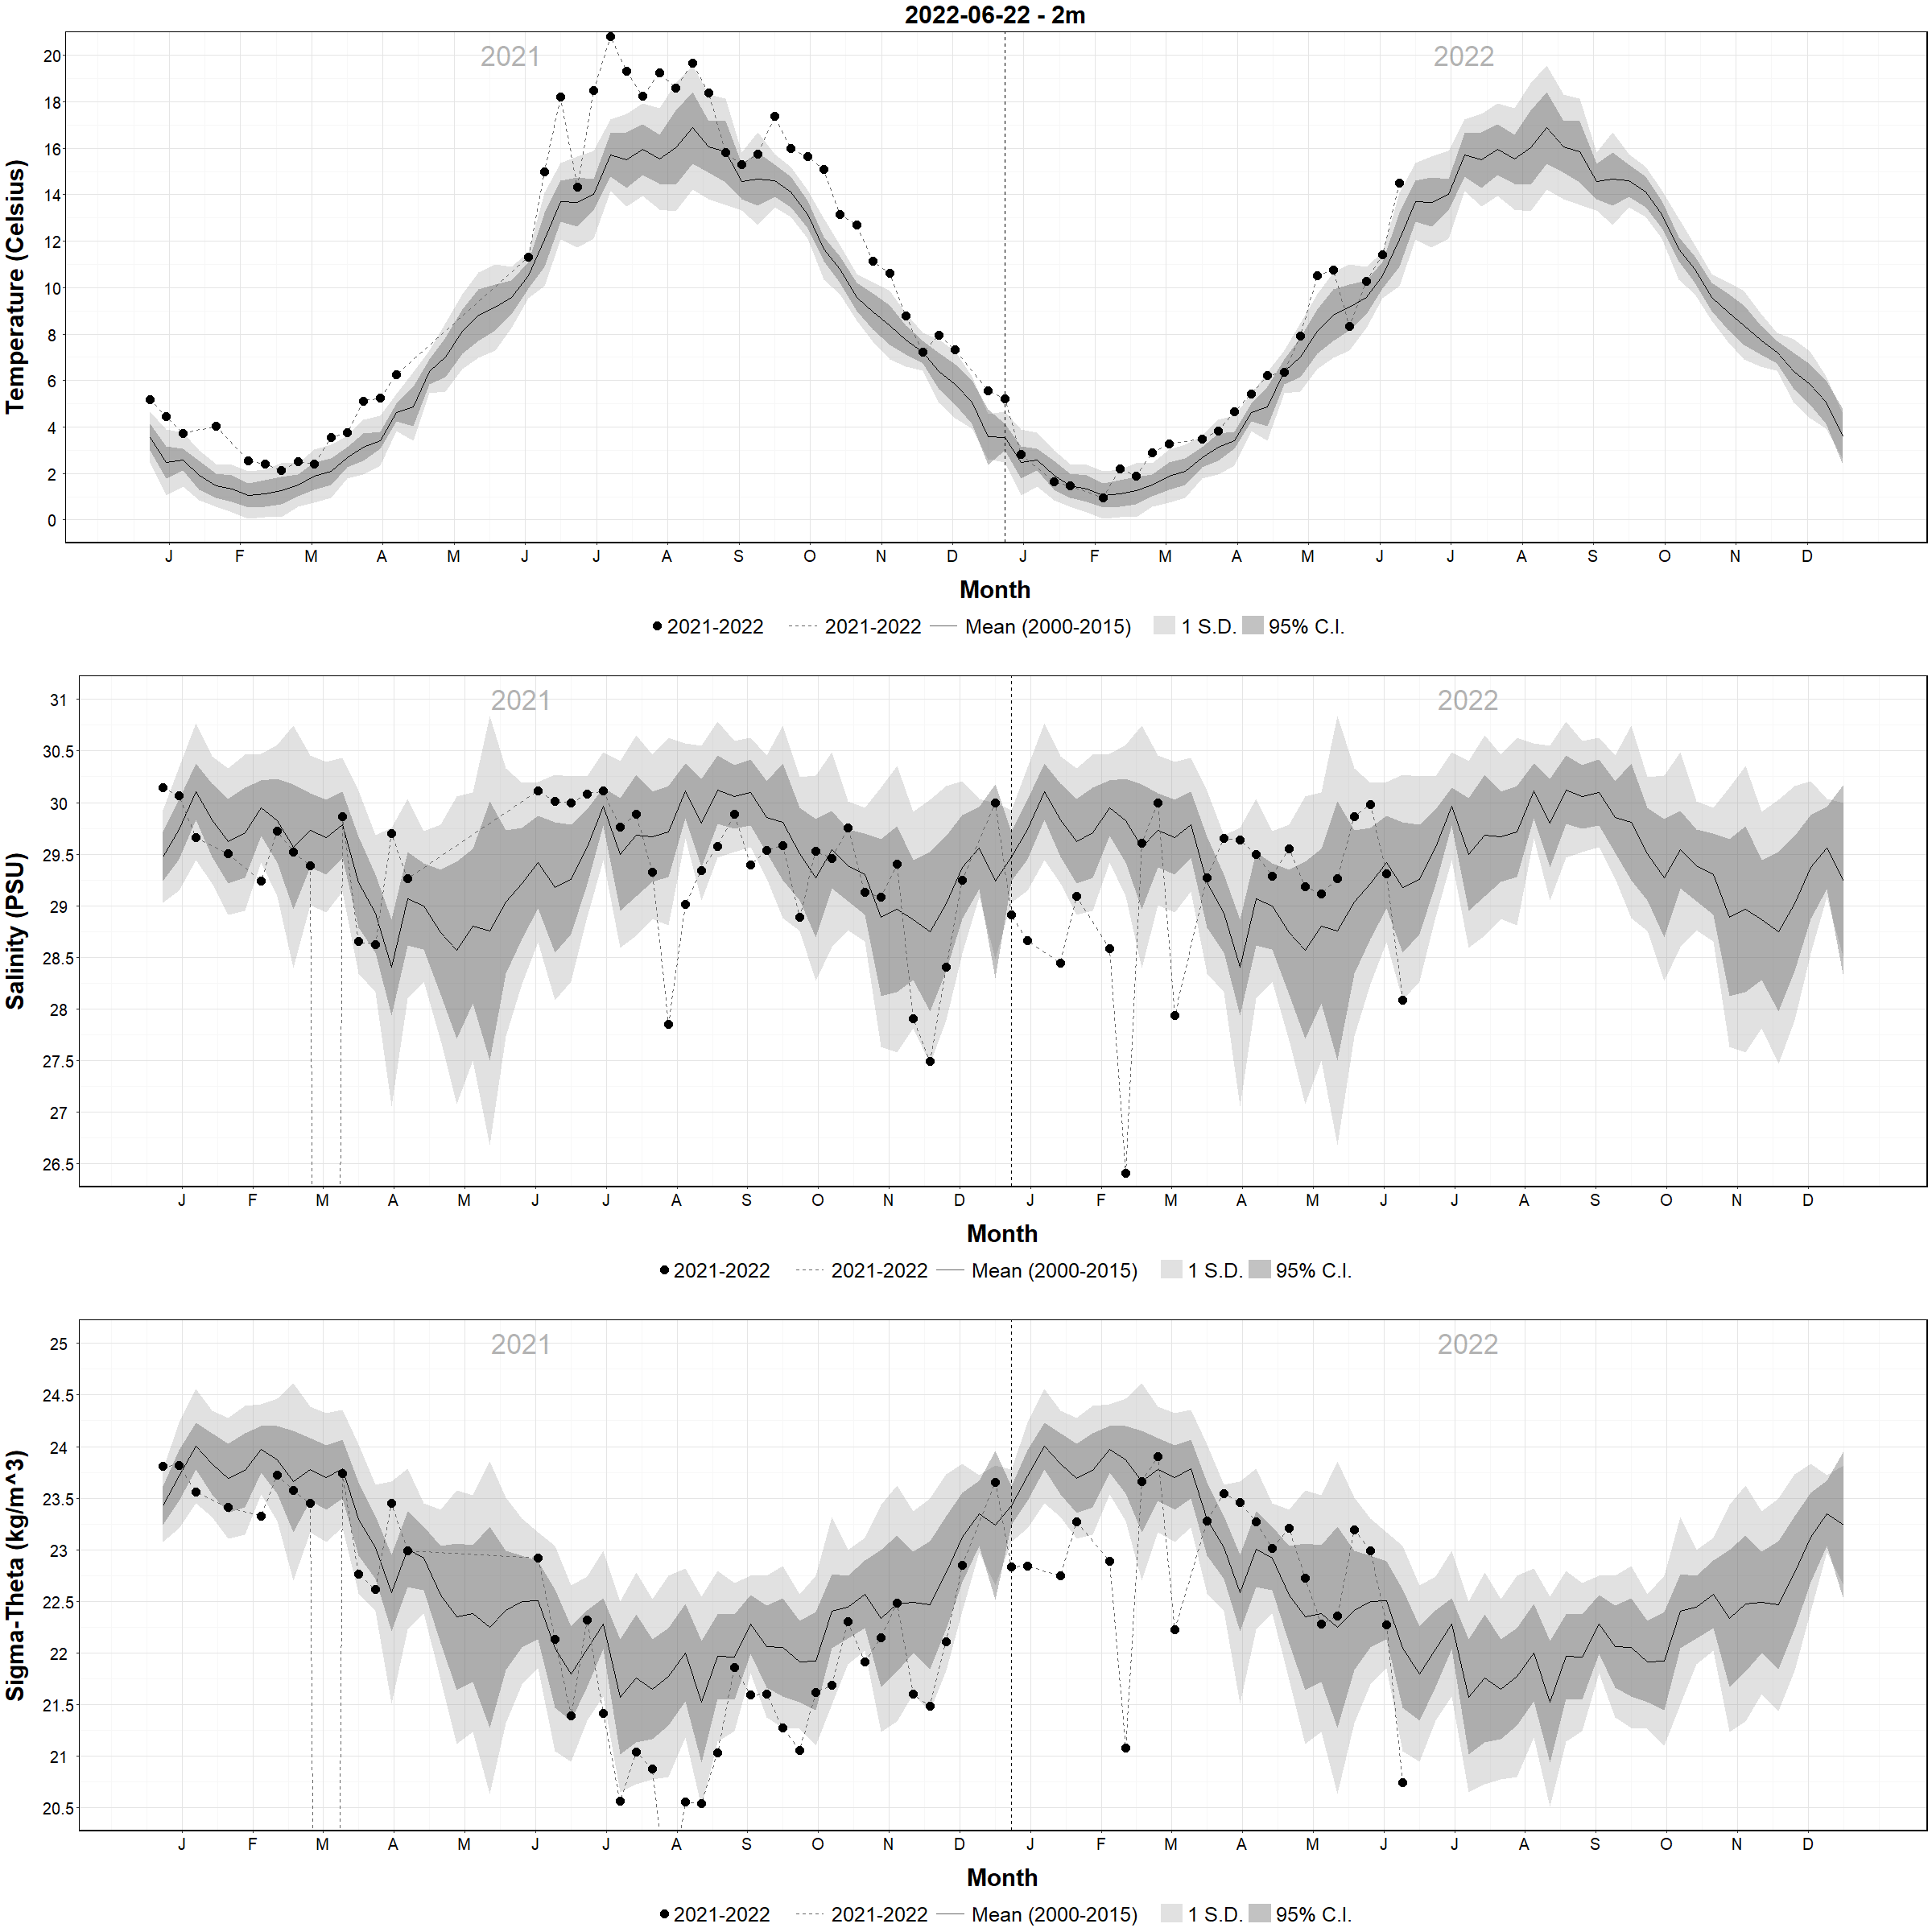 Weekly Temperature and Salinity Plots Versus Climatology - 2m